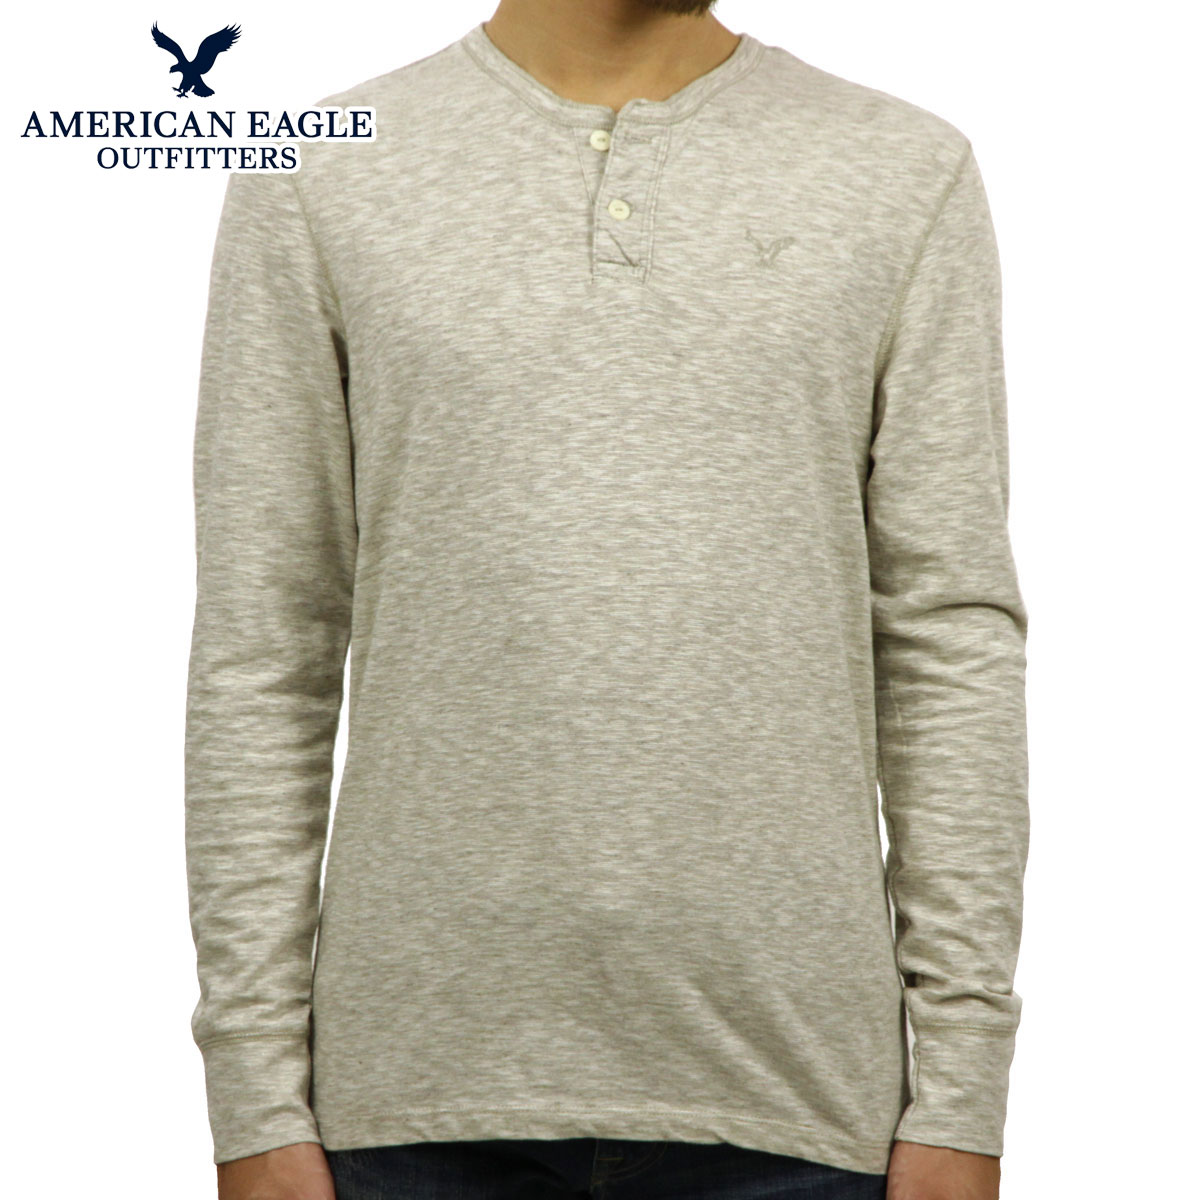 109cedda American Eagle AMERICAN EAGLE AE men's long sleeve Henry T shirt AE Legend Long  Sleeve Henley 4171-7605 LIGHT GREY 10P22Jul14